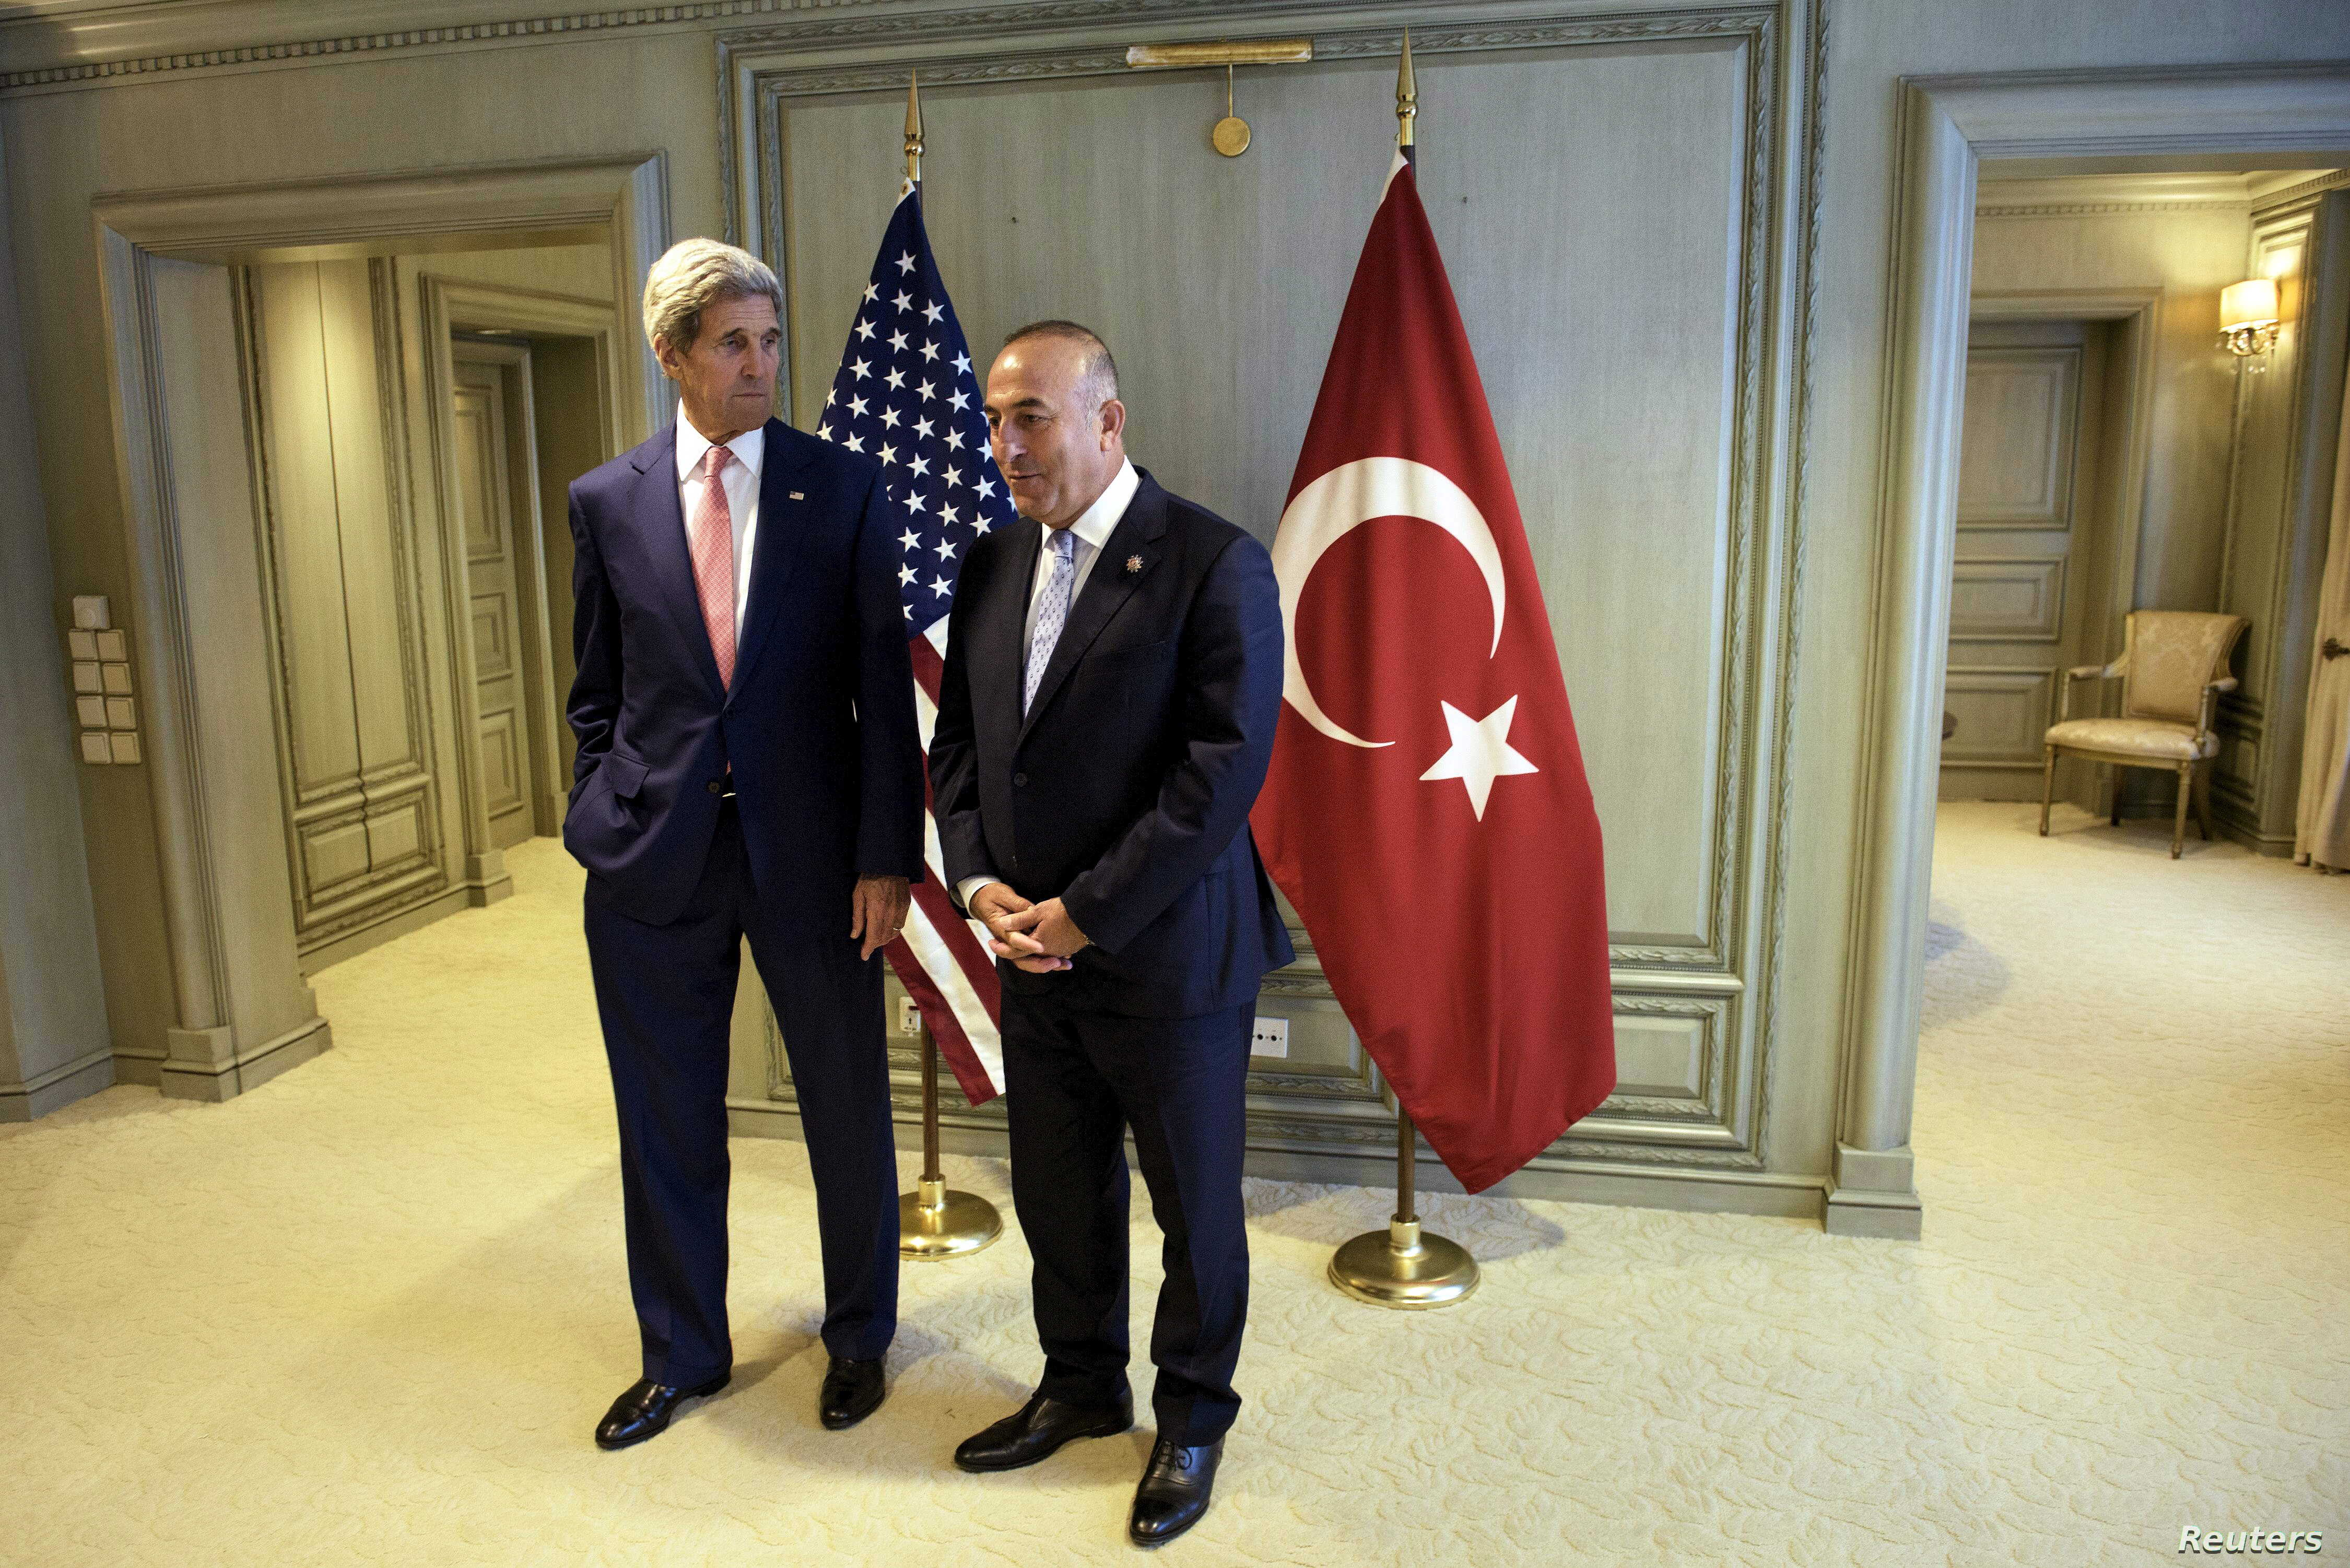 U.S. Secretary of State John Kerry, left, and Turkey's Foreign Minister Mevlut Cavusoglu wait for a meeting in Kuala Lumpur, August 5, 2015.